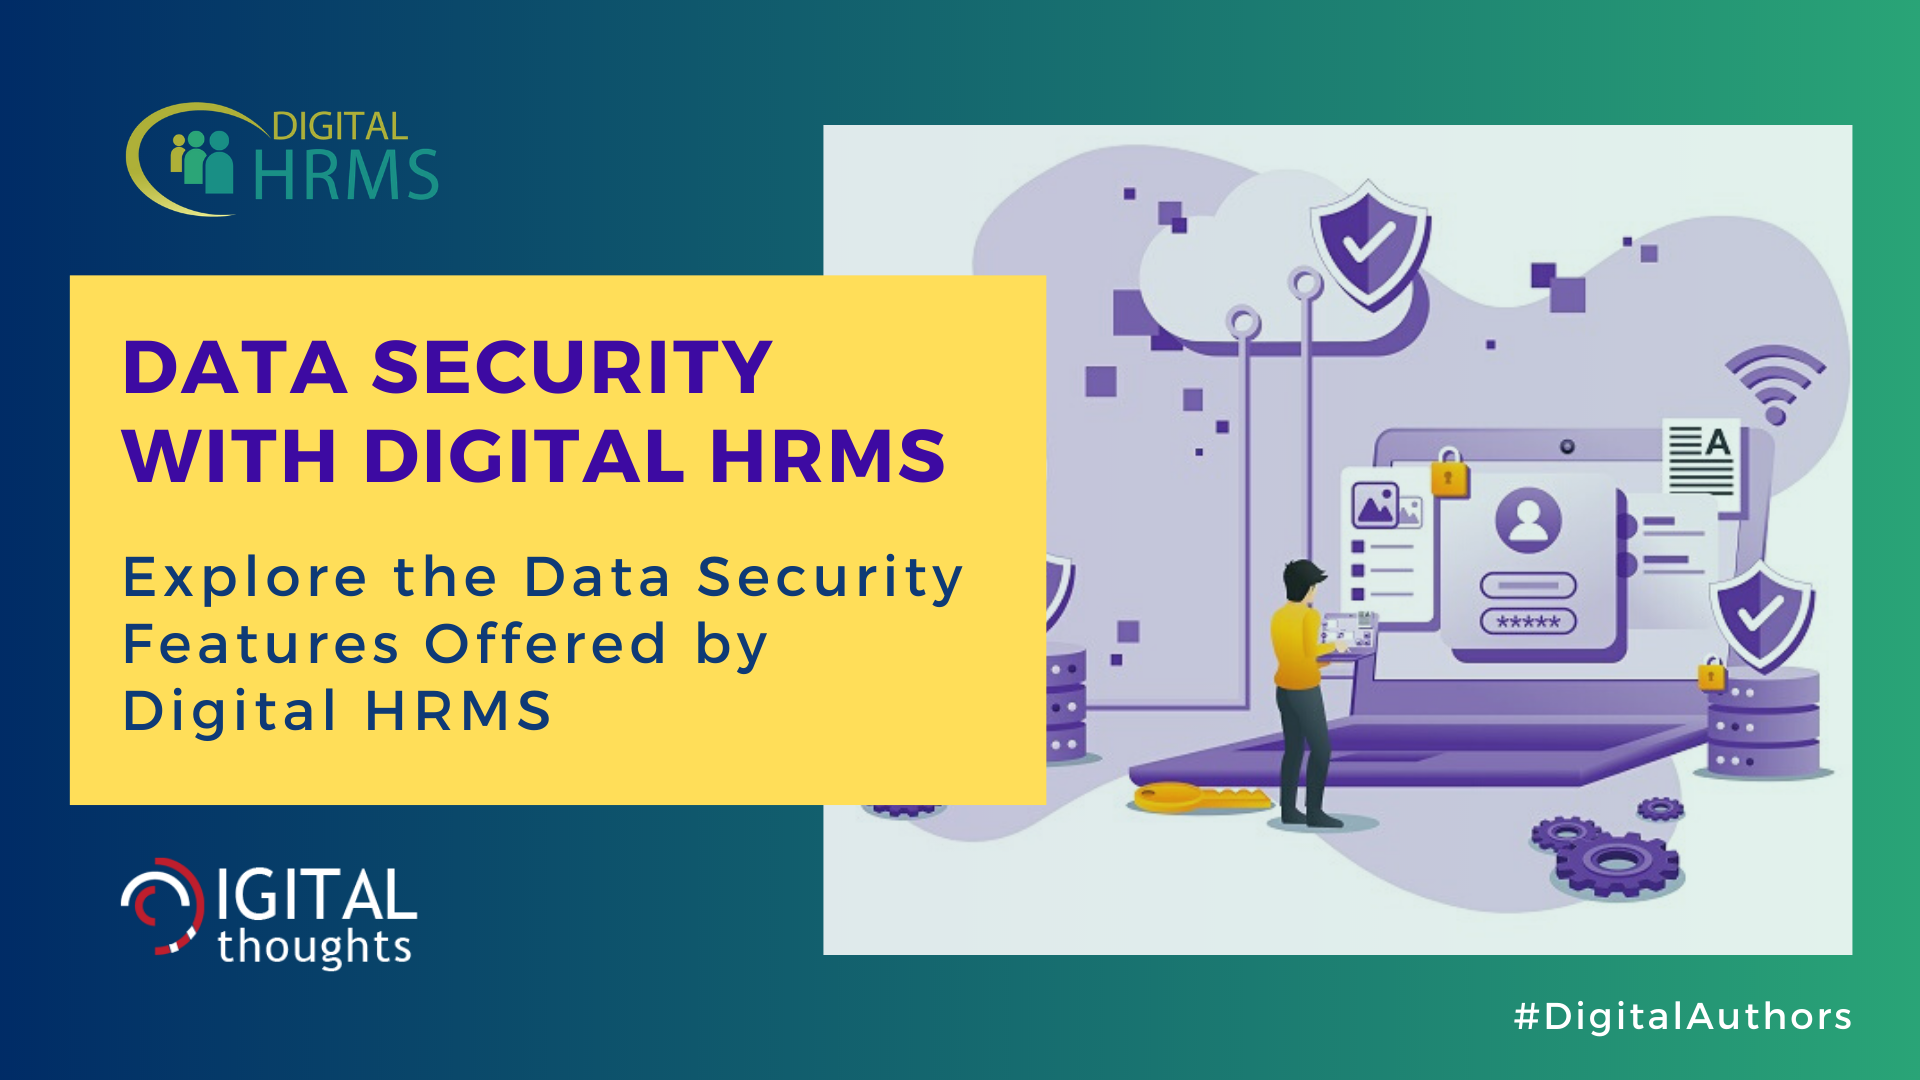 Data Security with Digital HRMS: How a HRMS Software Ensures Security of Organizational Data